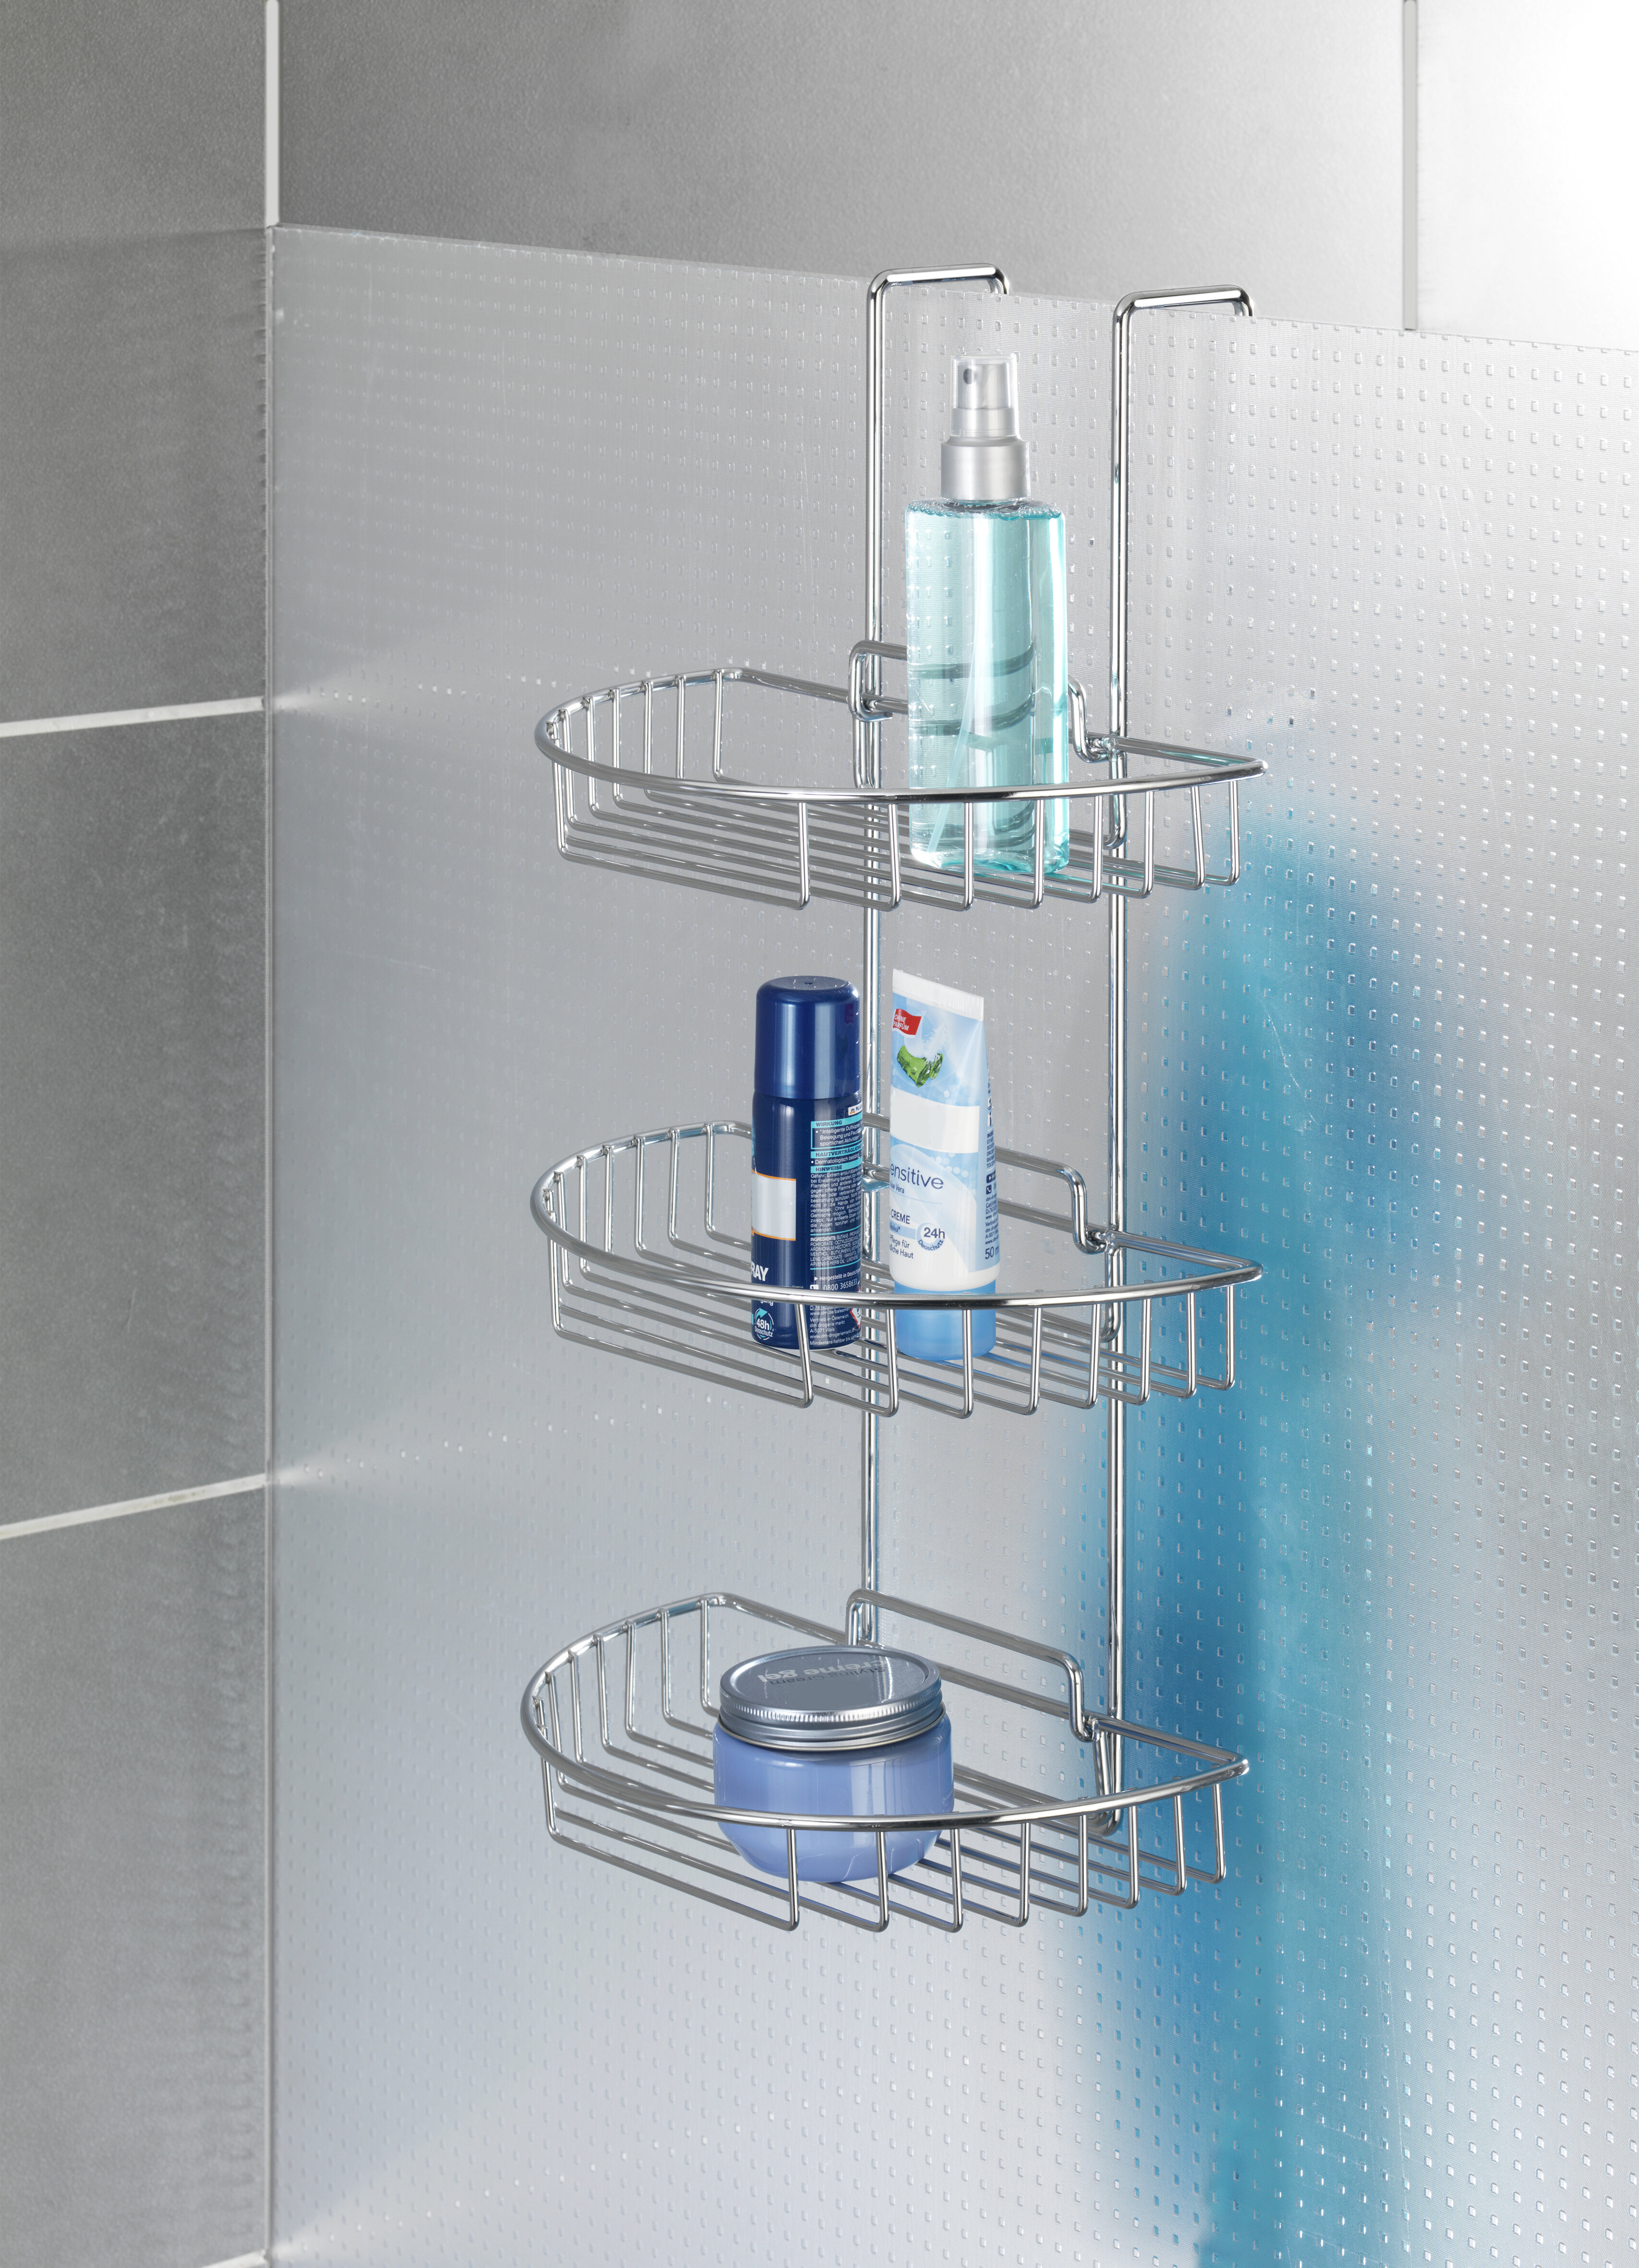 Wenko Chrome Wall Mounted Shower Caddy & Reviews | Wayfair.co.uk